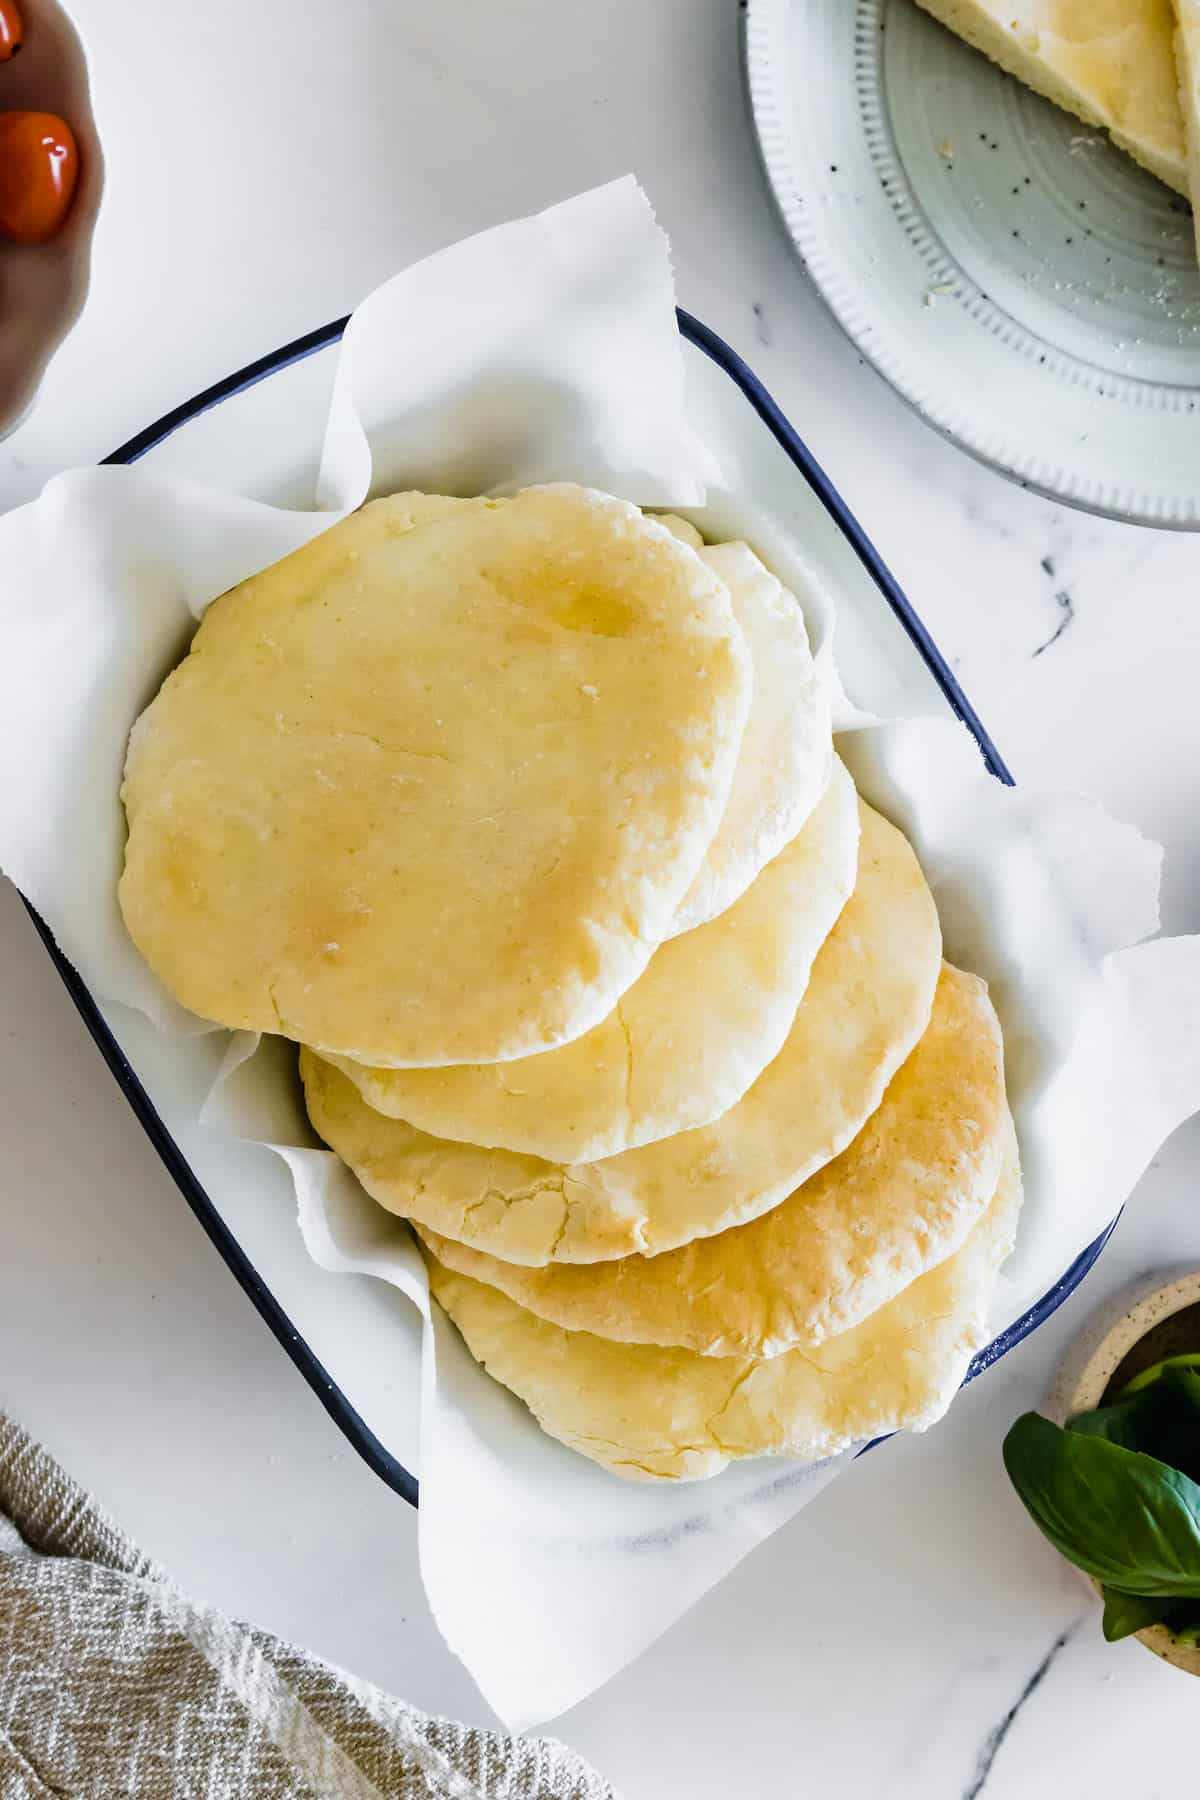 Six Pitas in a Serving Dish Lined with Parchment Paper